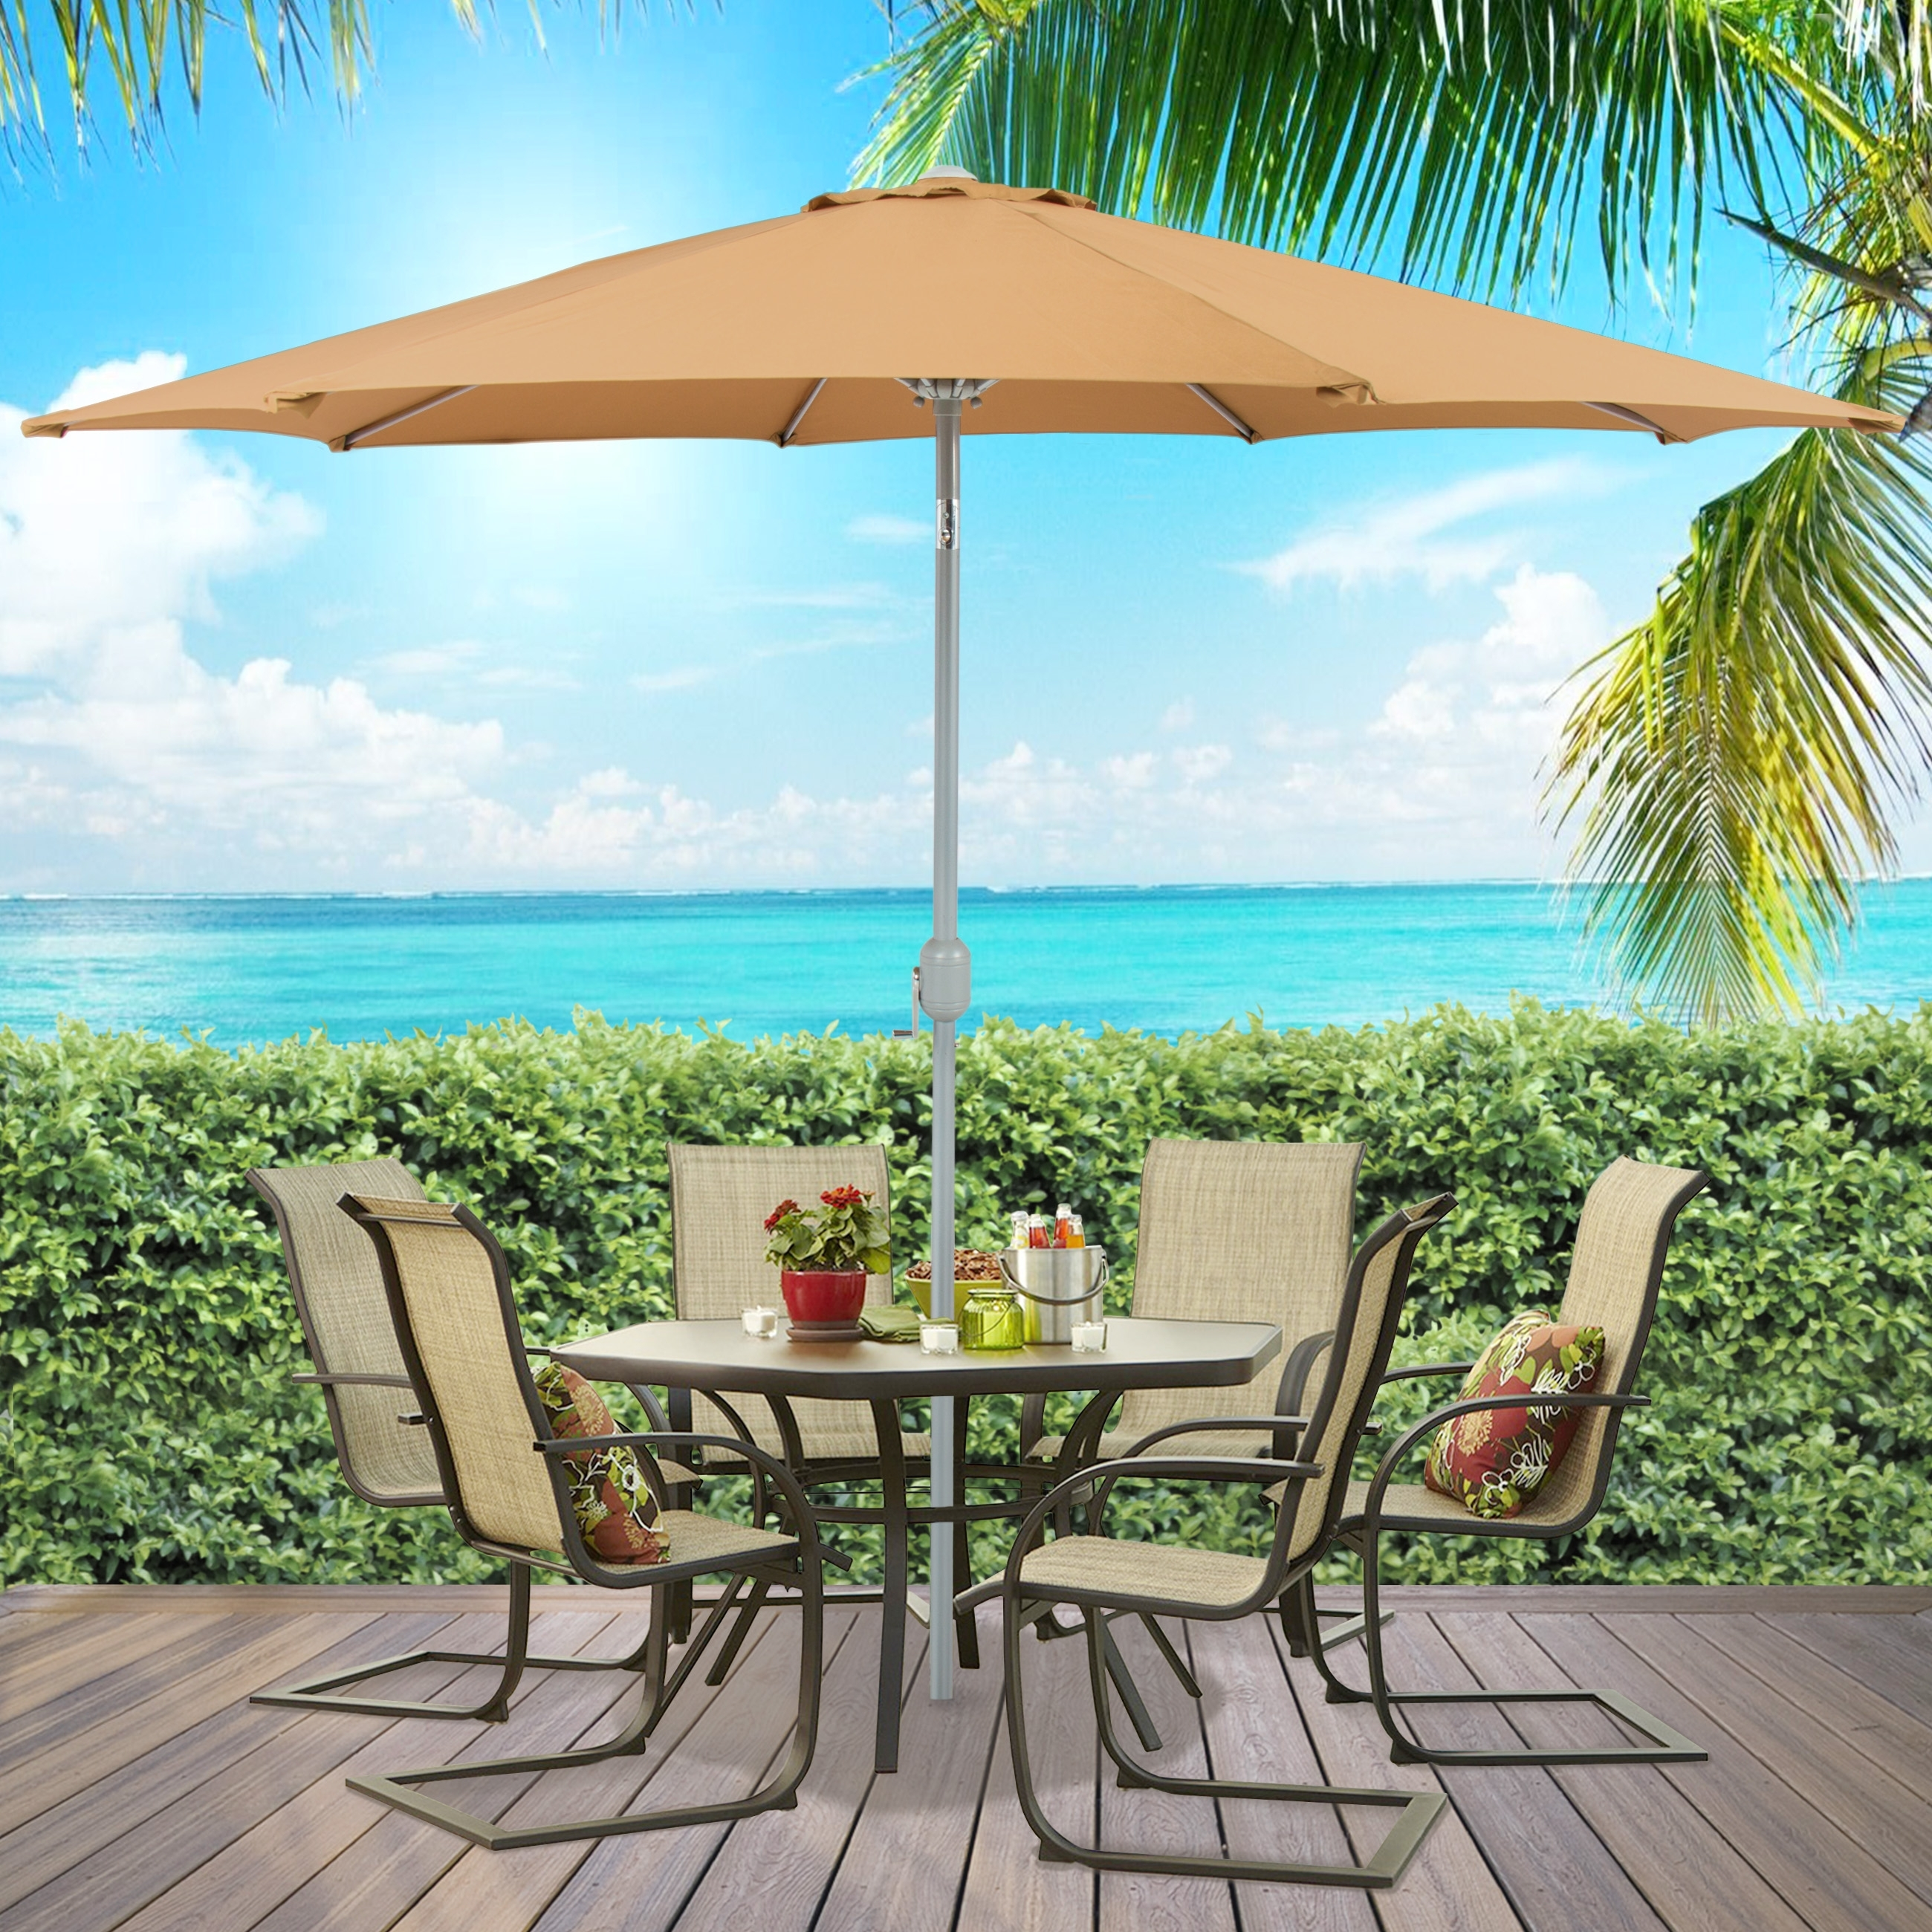 Best Choice Products Outdoor Furniture Wicker Rattan Patio Umbrella Pertaining To Most Up To Date Patio Umbrellas For Tables (View 15 of 20)